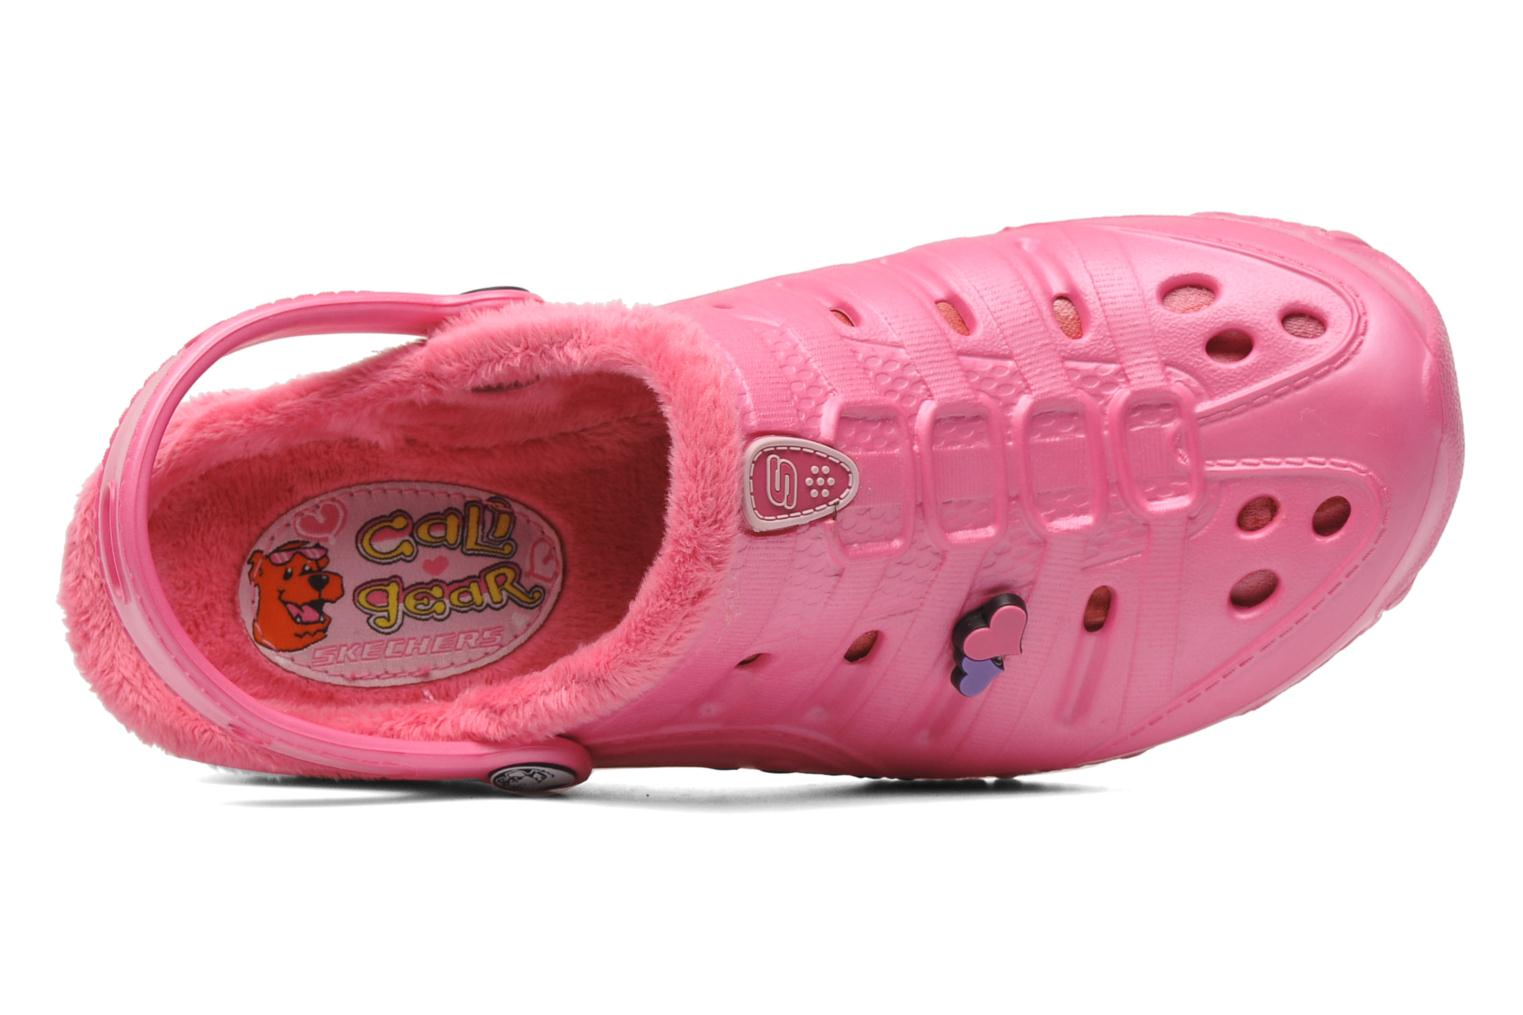 Sandals Skechers Cali Gear Darling E Pink view from the left